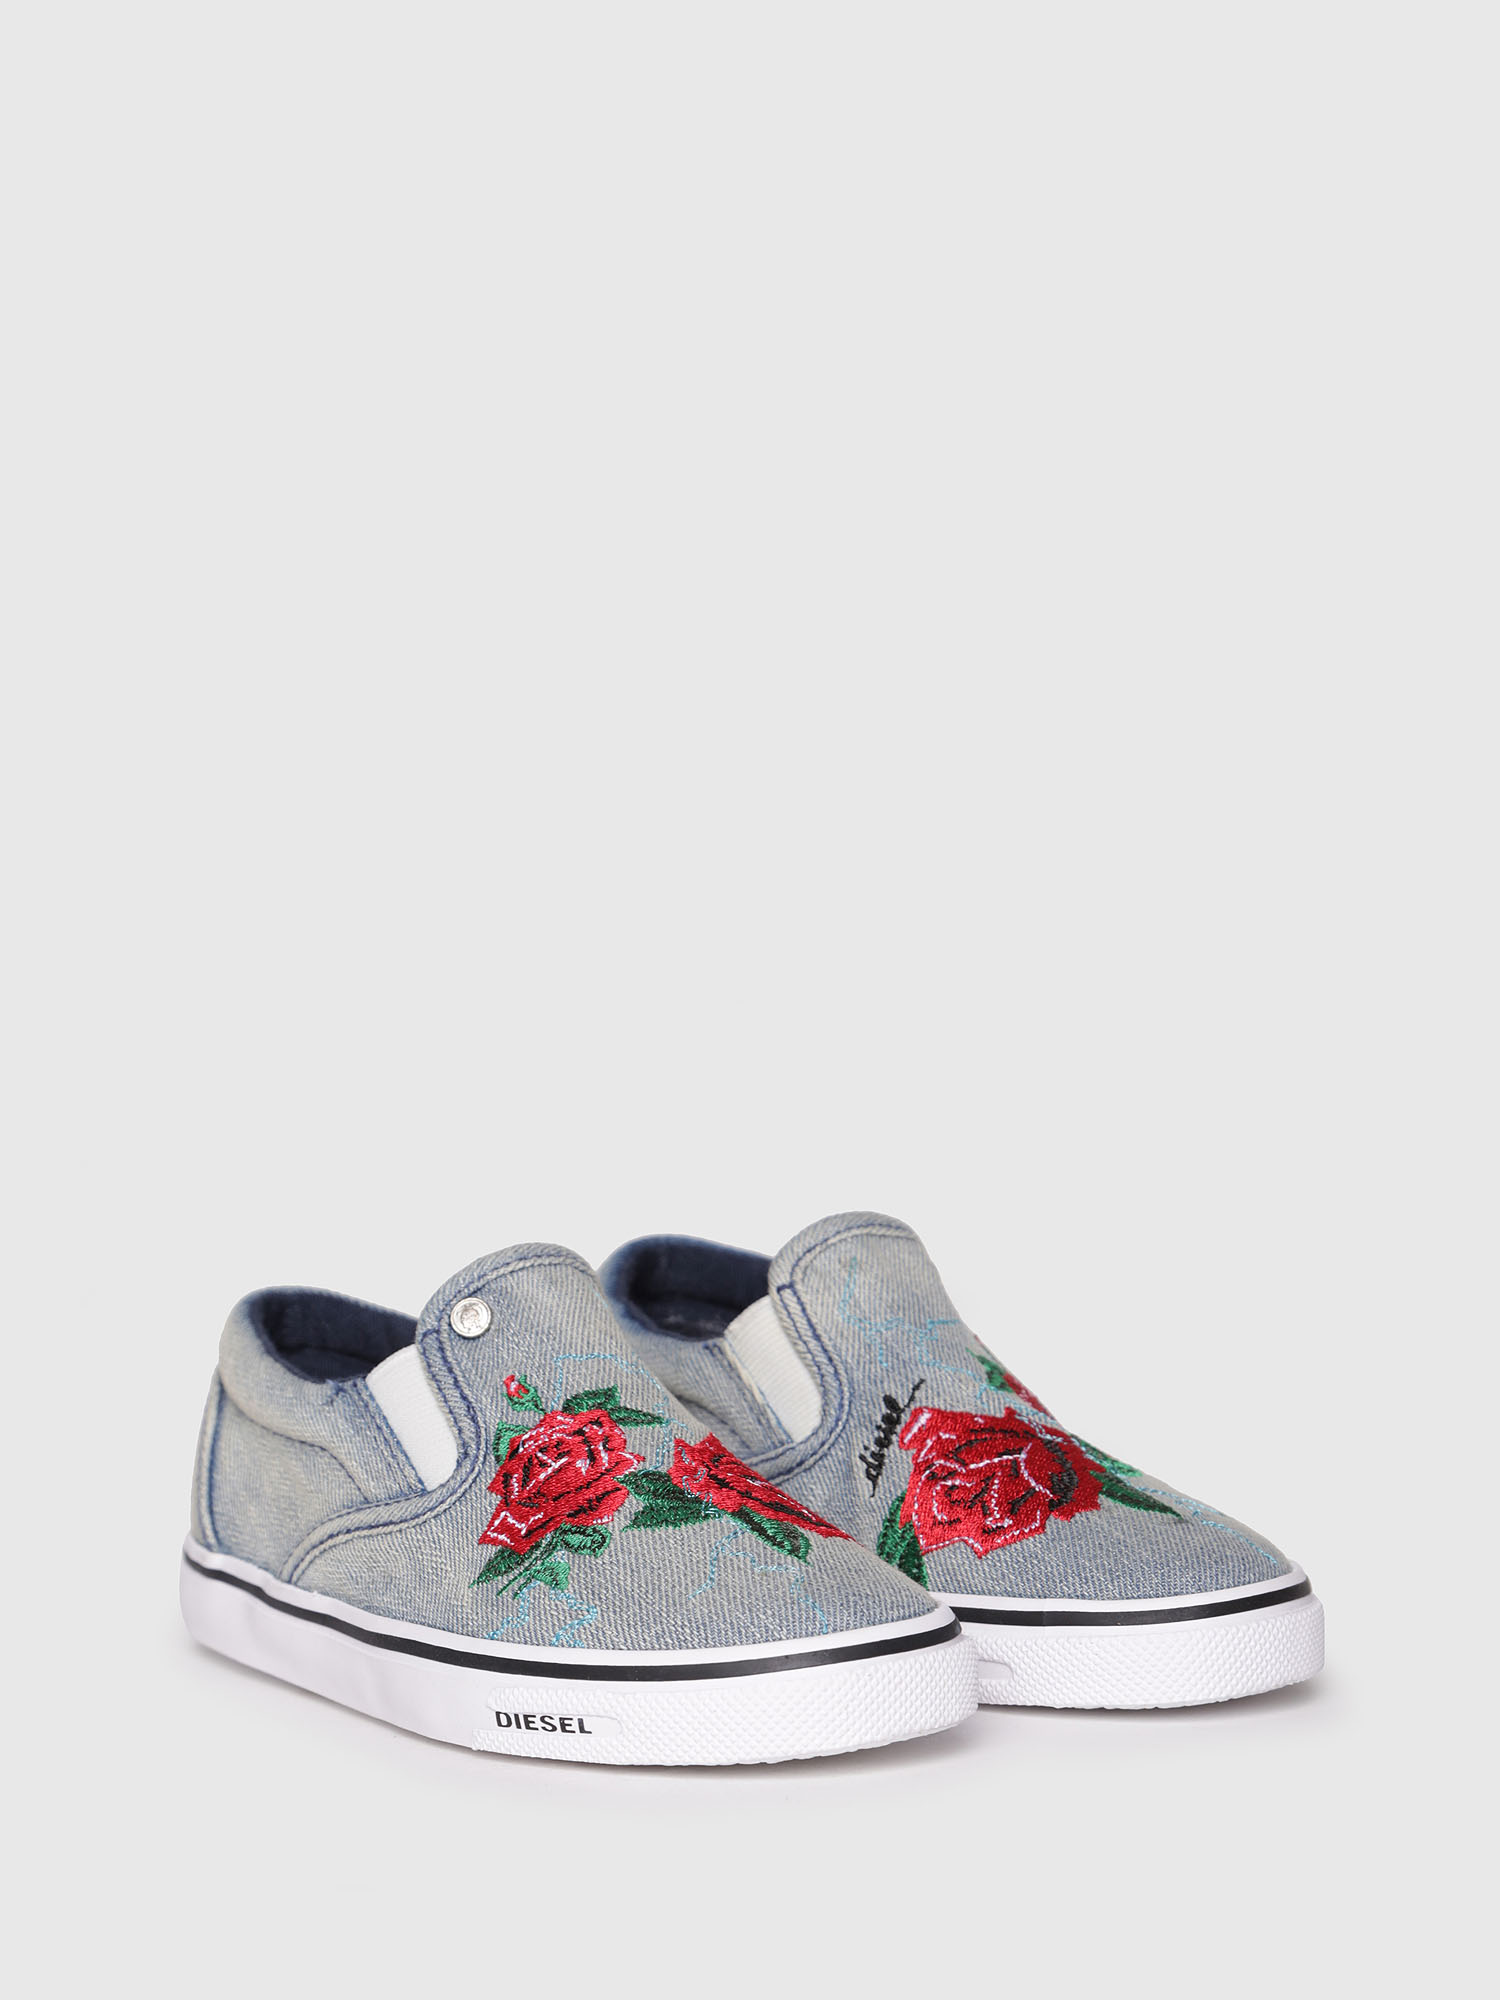 Diesel - SLIP ON 14 ROSE CH,  - Footwear - Image 2